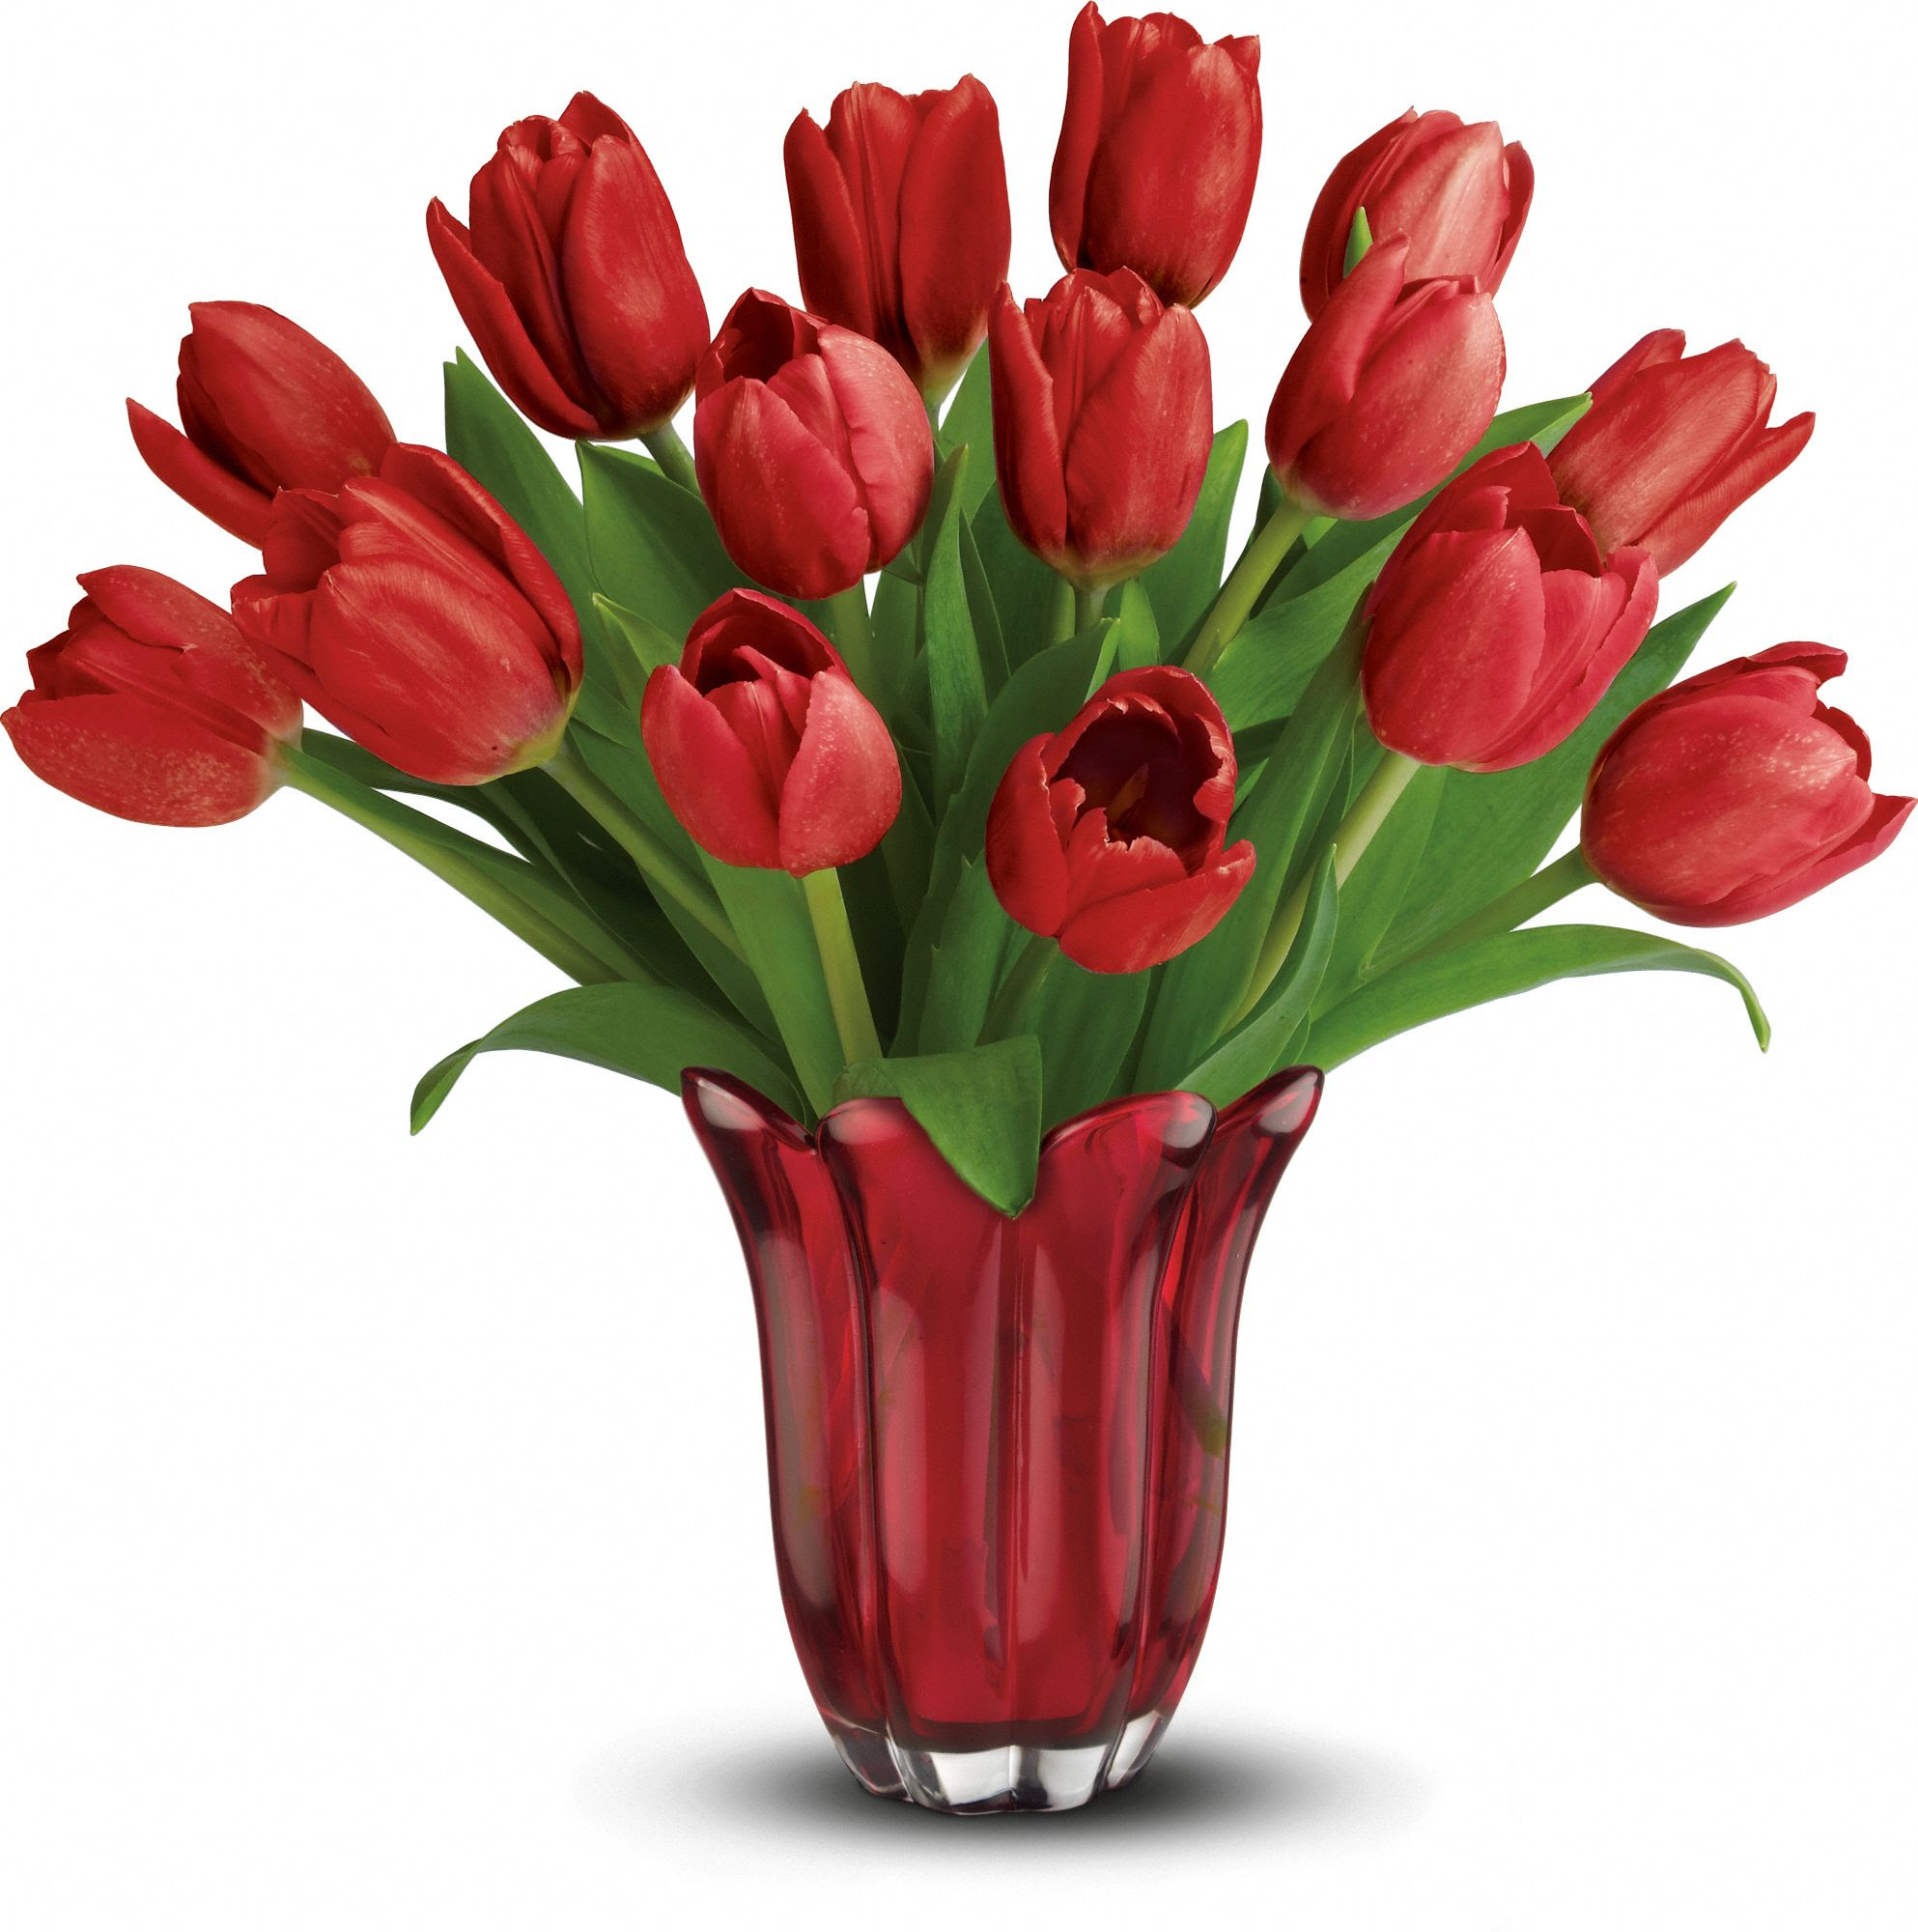 Red tulips express \u0026quot;Perfect Love\u0026quot; for Valentine\u002639;s Day